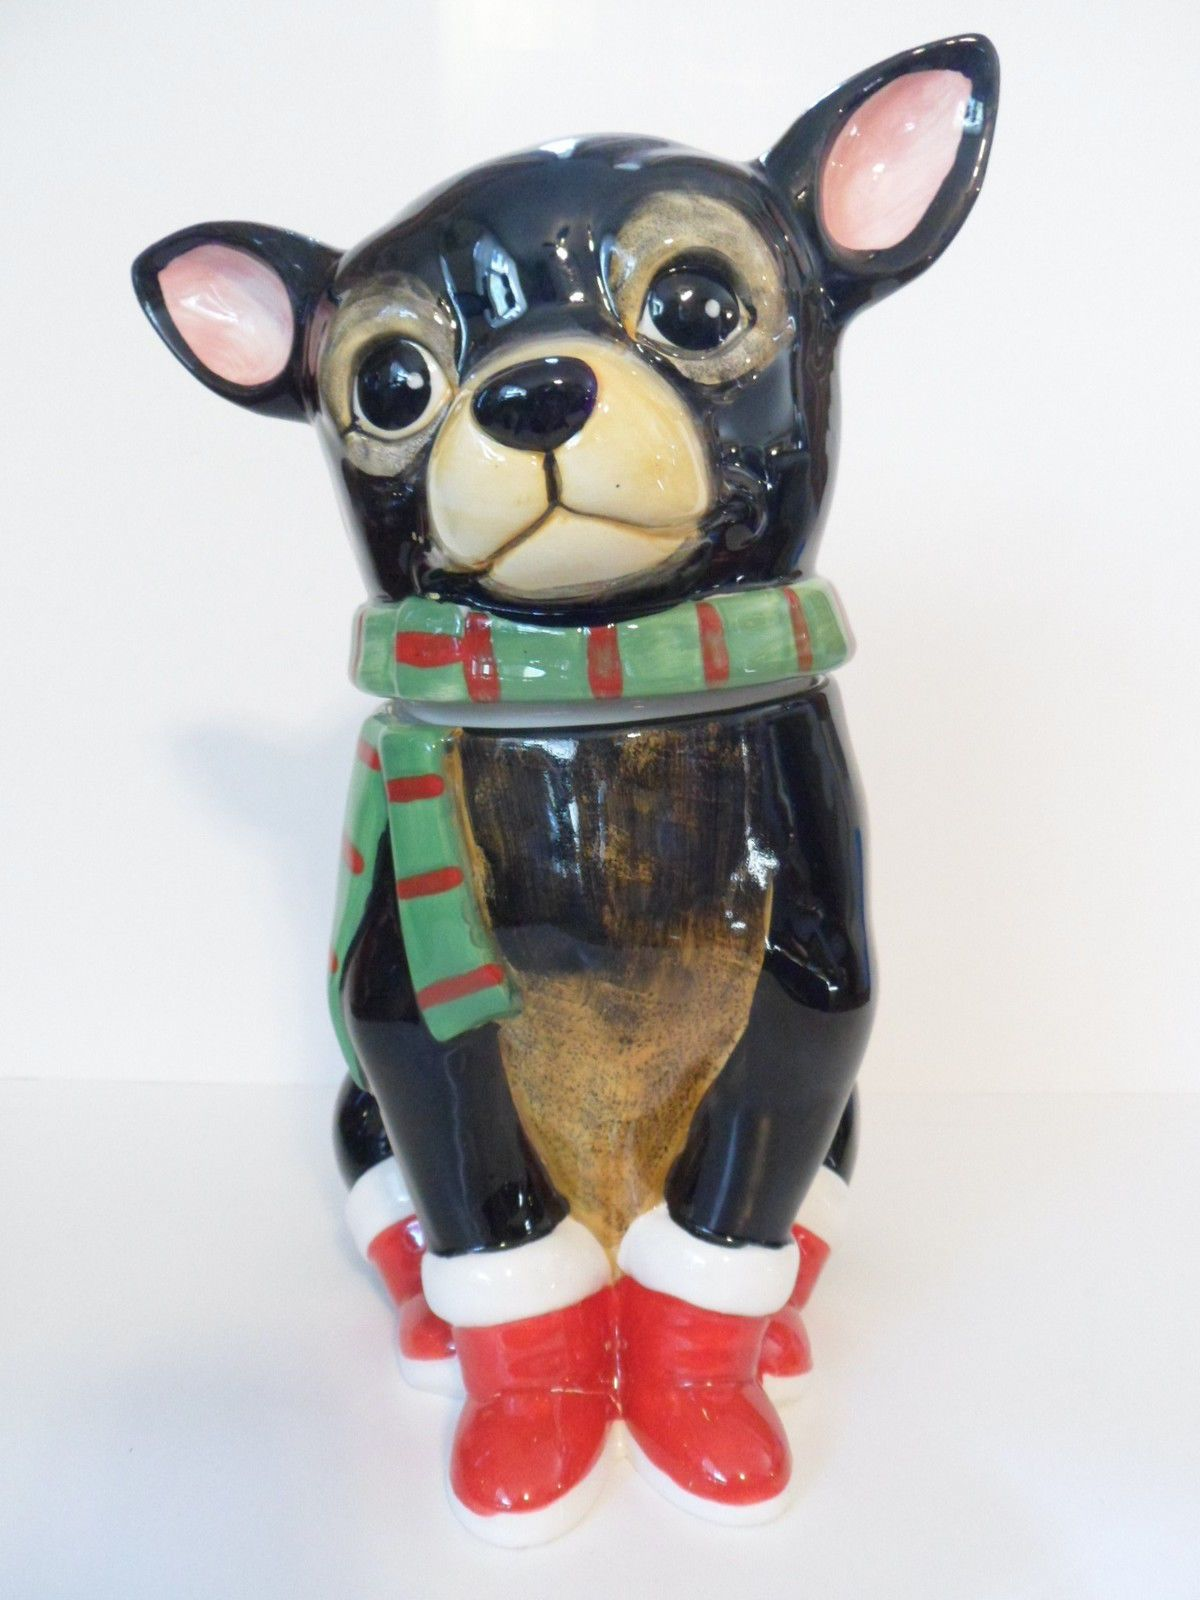 Chihuahua Cookie Jar New Starbucks San Francisco 2015 Ceramic Holiday Christmas Ornament